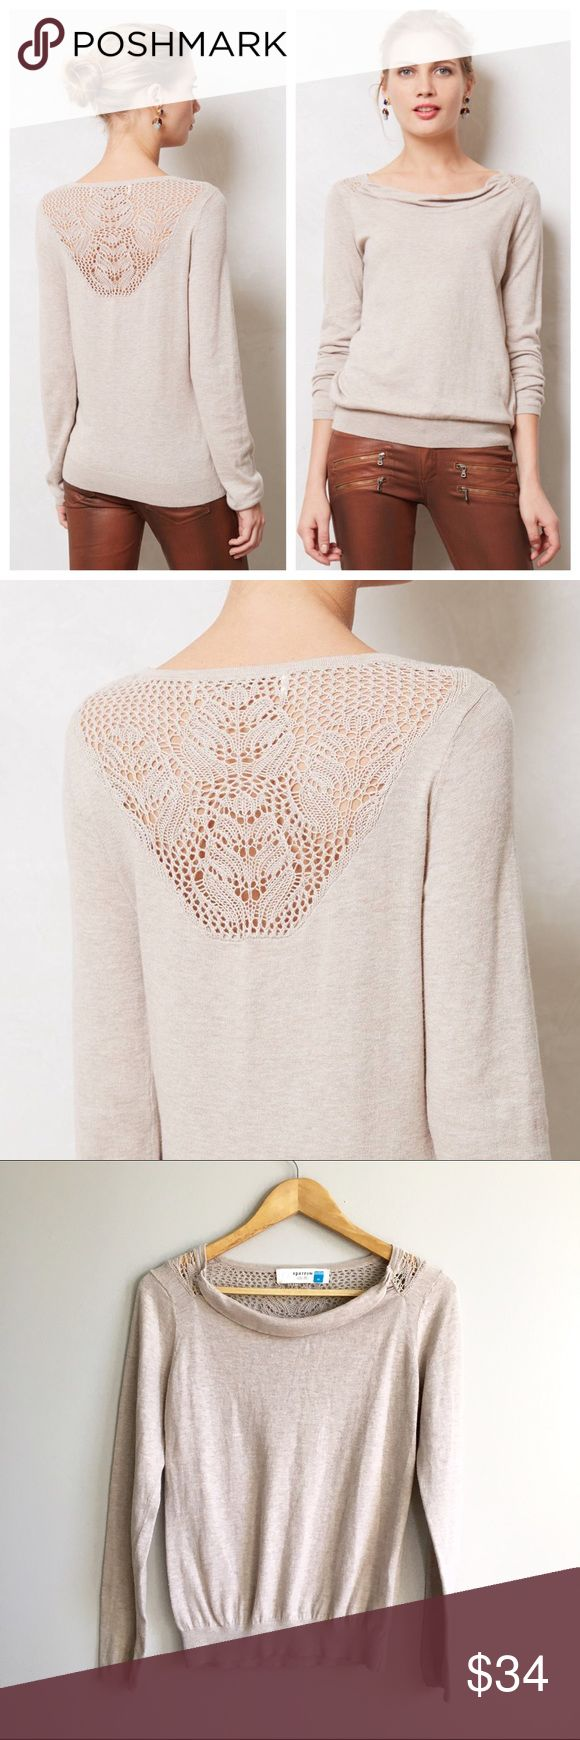 Anthropologie Aida Cowlneck Pretty a drapey cowlneck and delicate crocheted back, Sparrow's lightweight pullover is perfect with both your go-to weekend denim and a prim pencil skirt. Pullover styling Cotton, nylon, viscose, angora, cashmere Hand wash Anthropologie Sweaters Crew & Scoop Necks